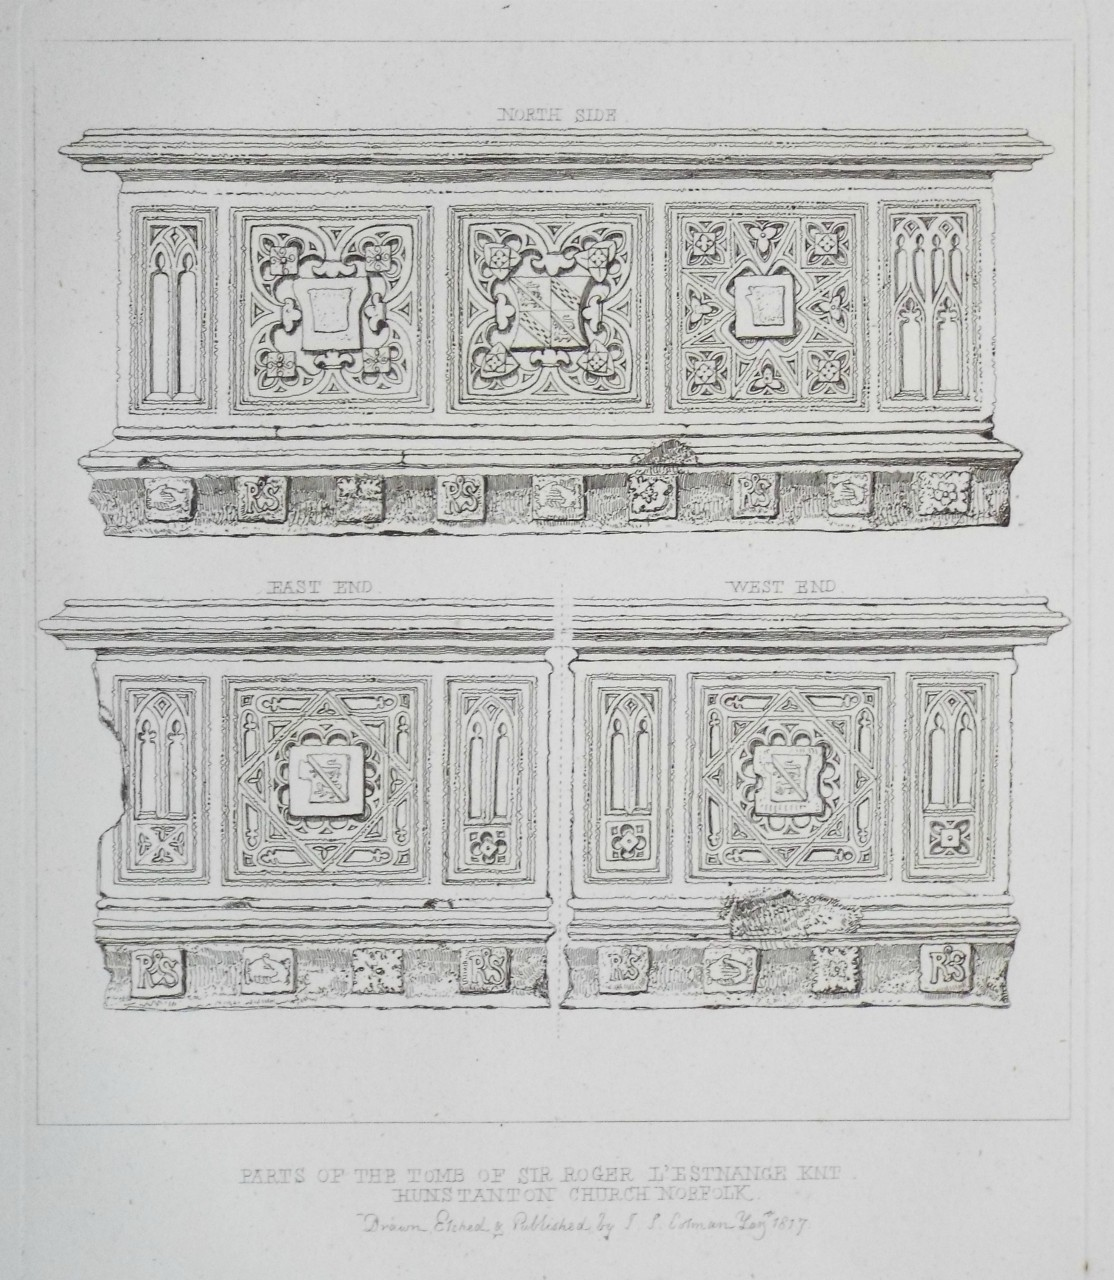 Etching - Parts of the Tomb of Sir Roger L'Estrange Knt Hunstanton Church Norfolk - Cotman